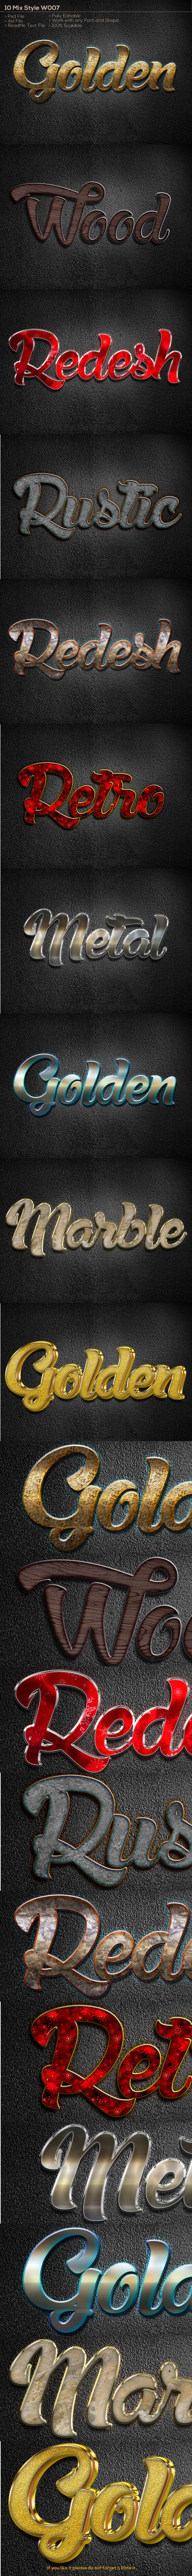 10 Mix Style W007 - Text Effects Styles